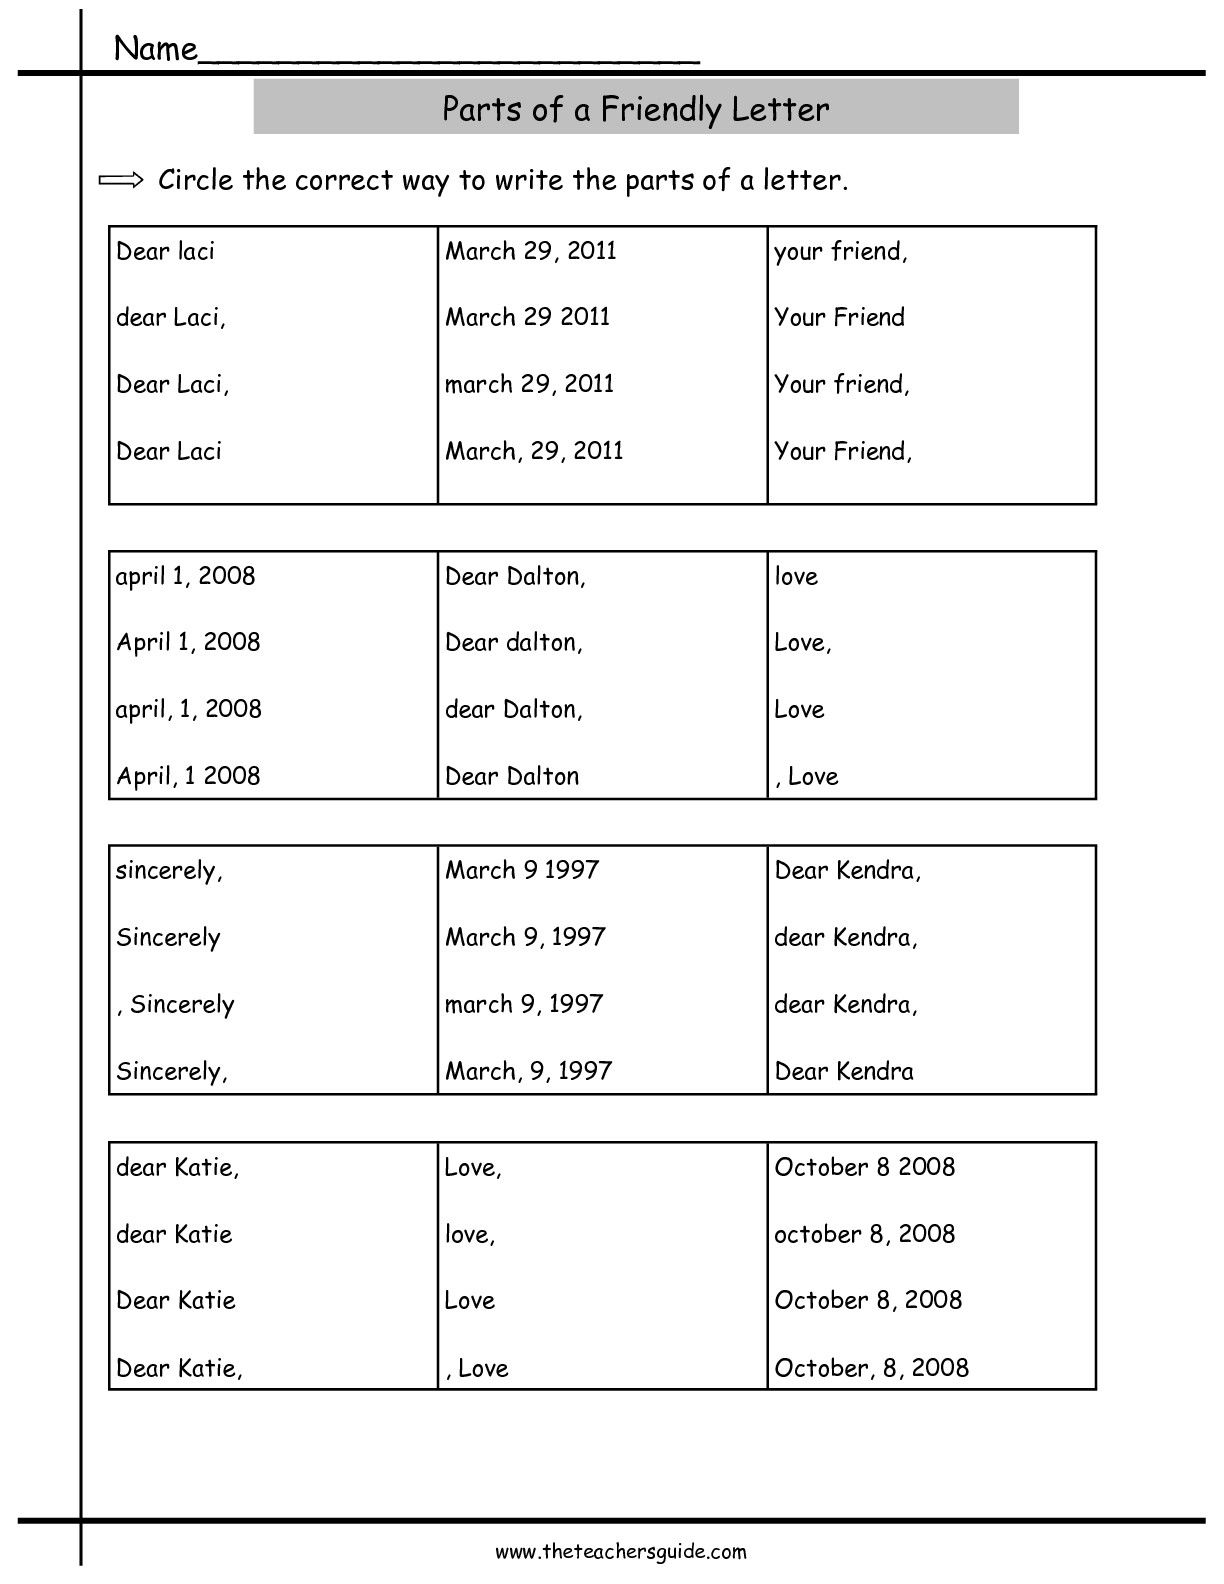 Worksheet On Coordinating Conjunctions For Grade 5